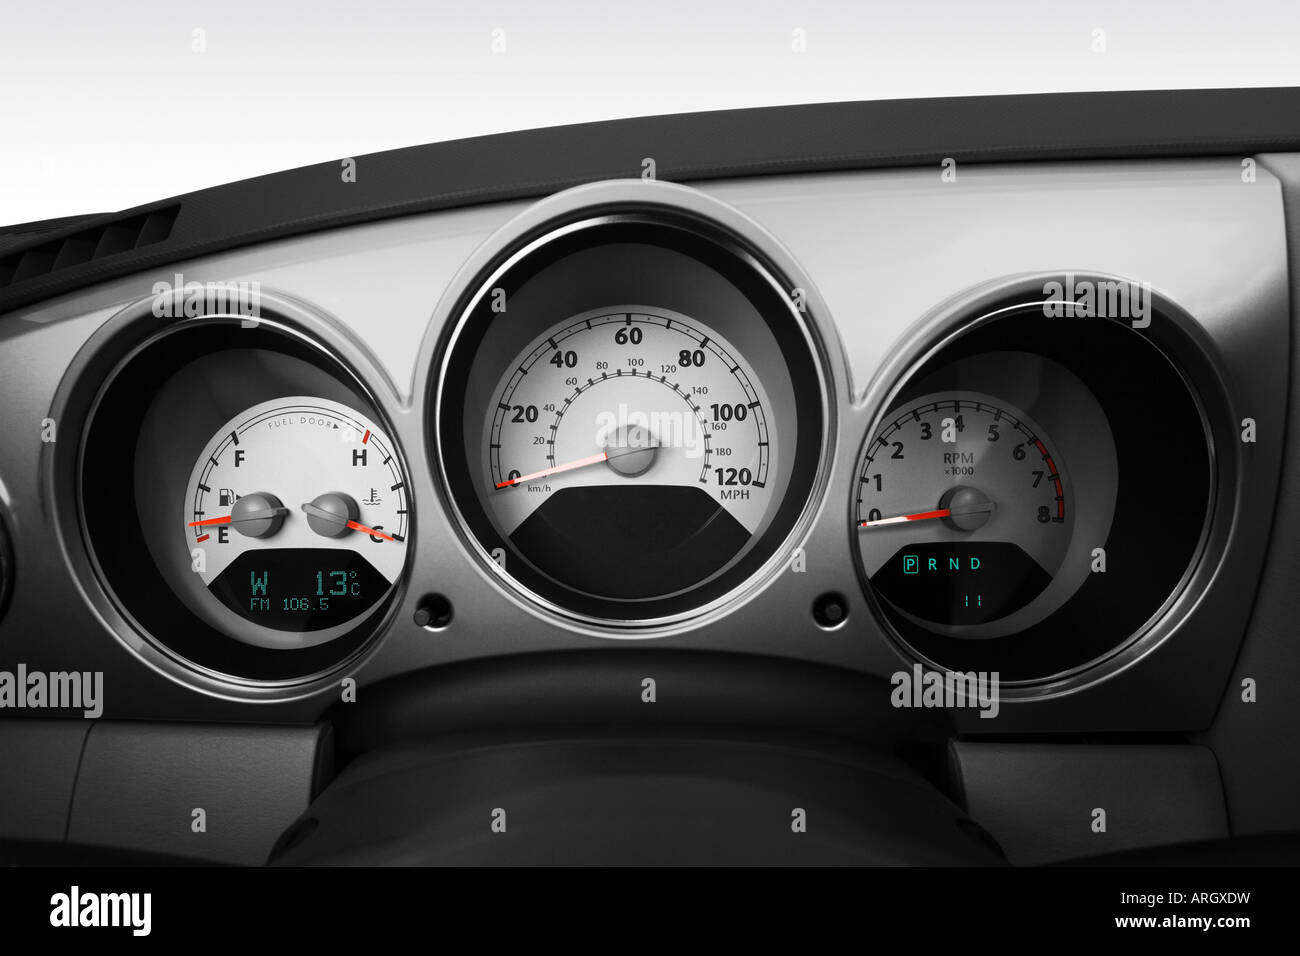 Car Chrysler Pt Cruiser Convertible Stock Photos Fuel Filter 2007 Spring Special In White Speedometer Tachometer Image